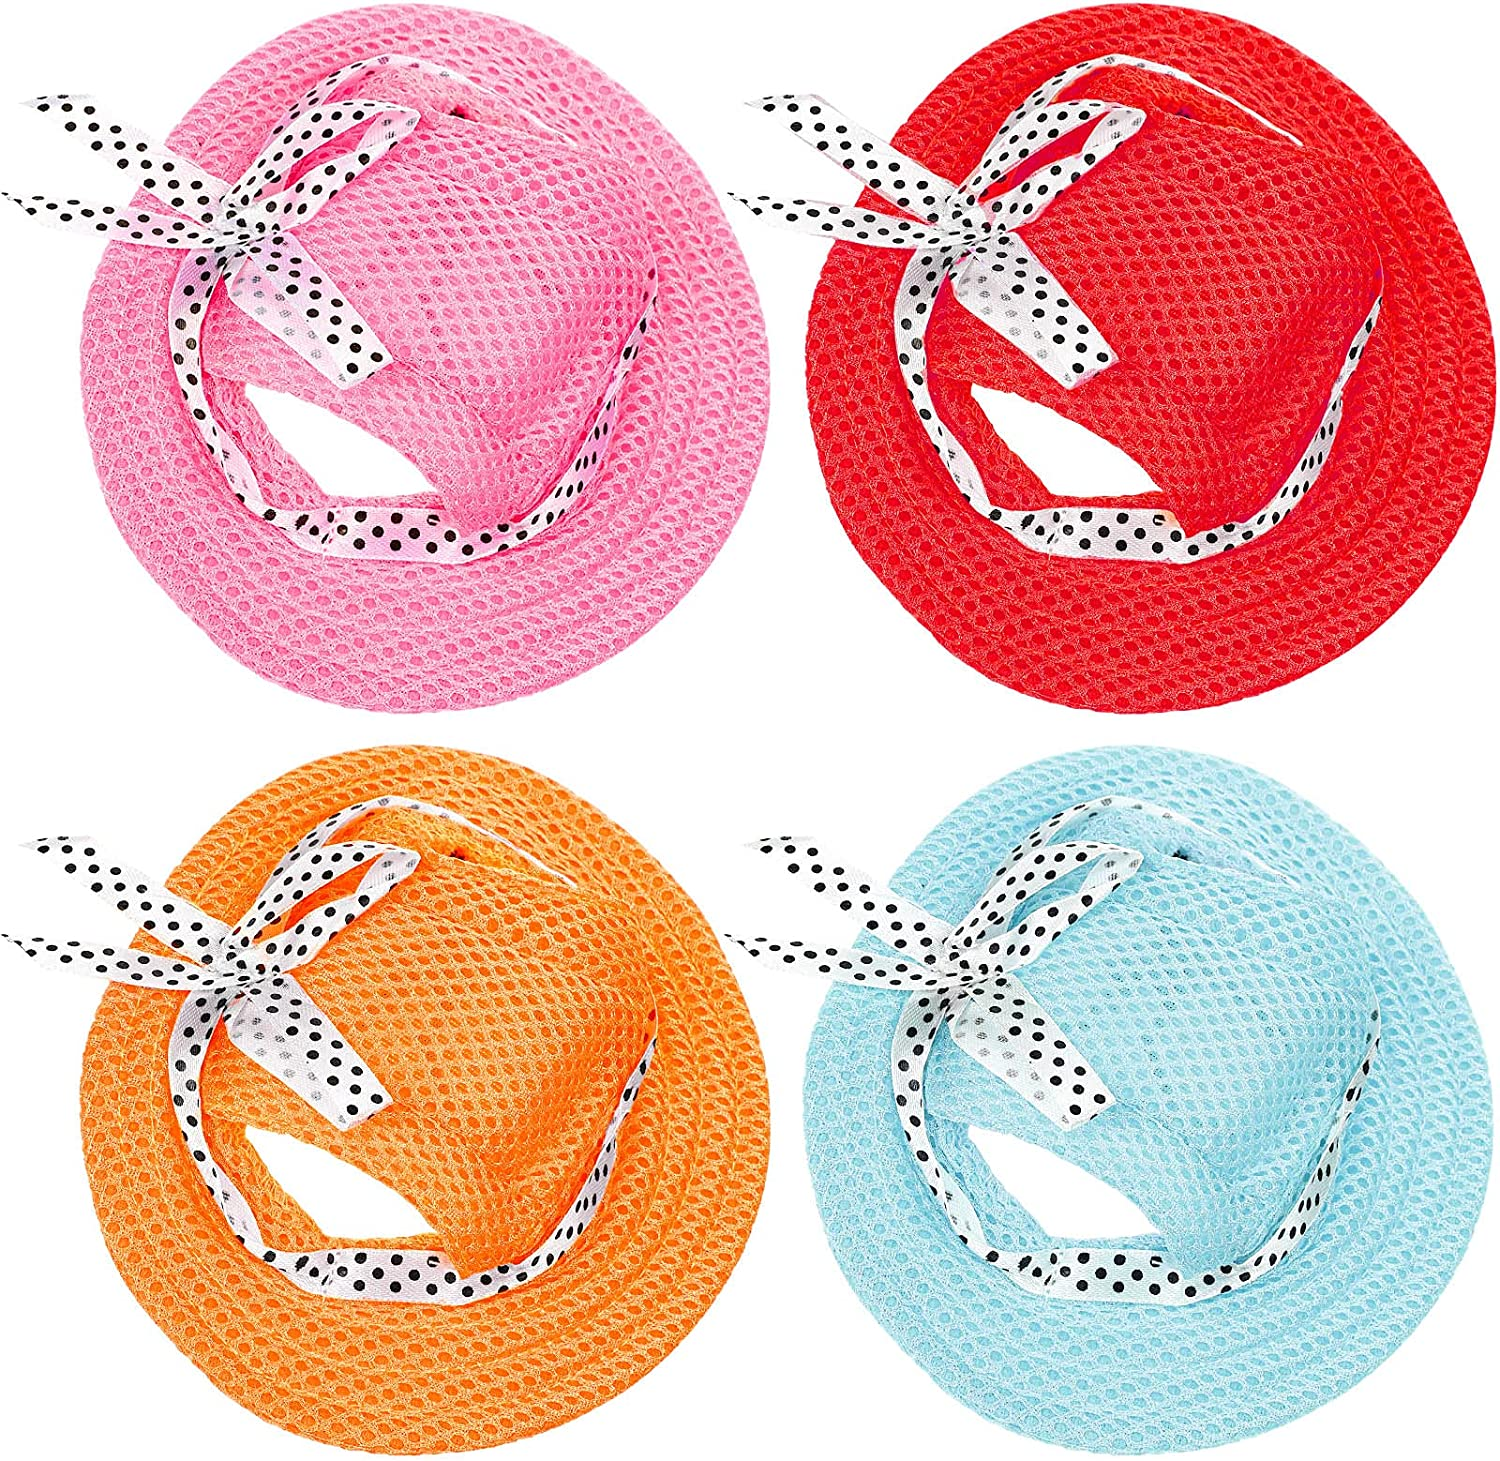 4 Pieces Dog Princess Hat Round Brim Pet Baseball Hat Dog Mesh Porous Cap with Ear Holes Pet Outdoor Sun Protection Sunbonnet Dog Hat for Small Medium and Large Dogs (Small) : Pet Supplies